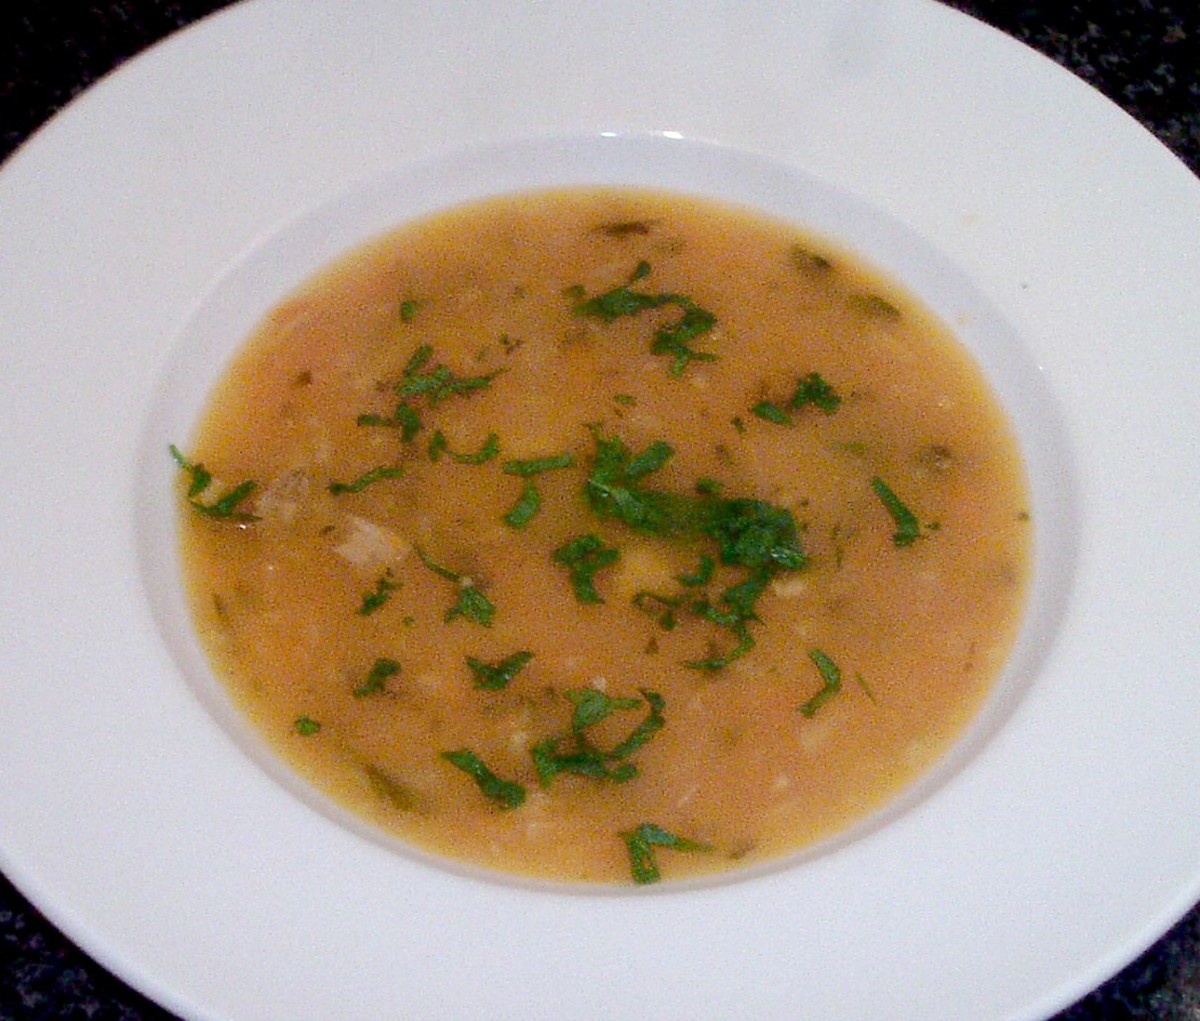 Pheasant breast wild game soup